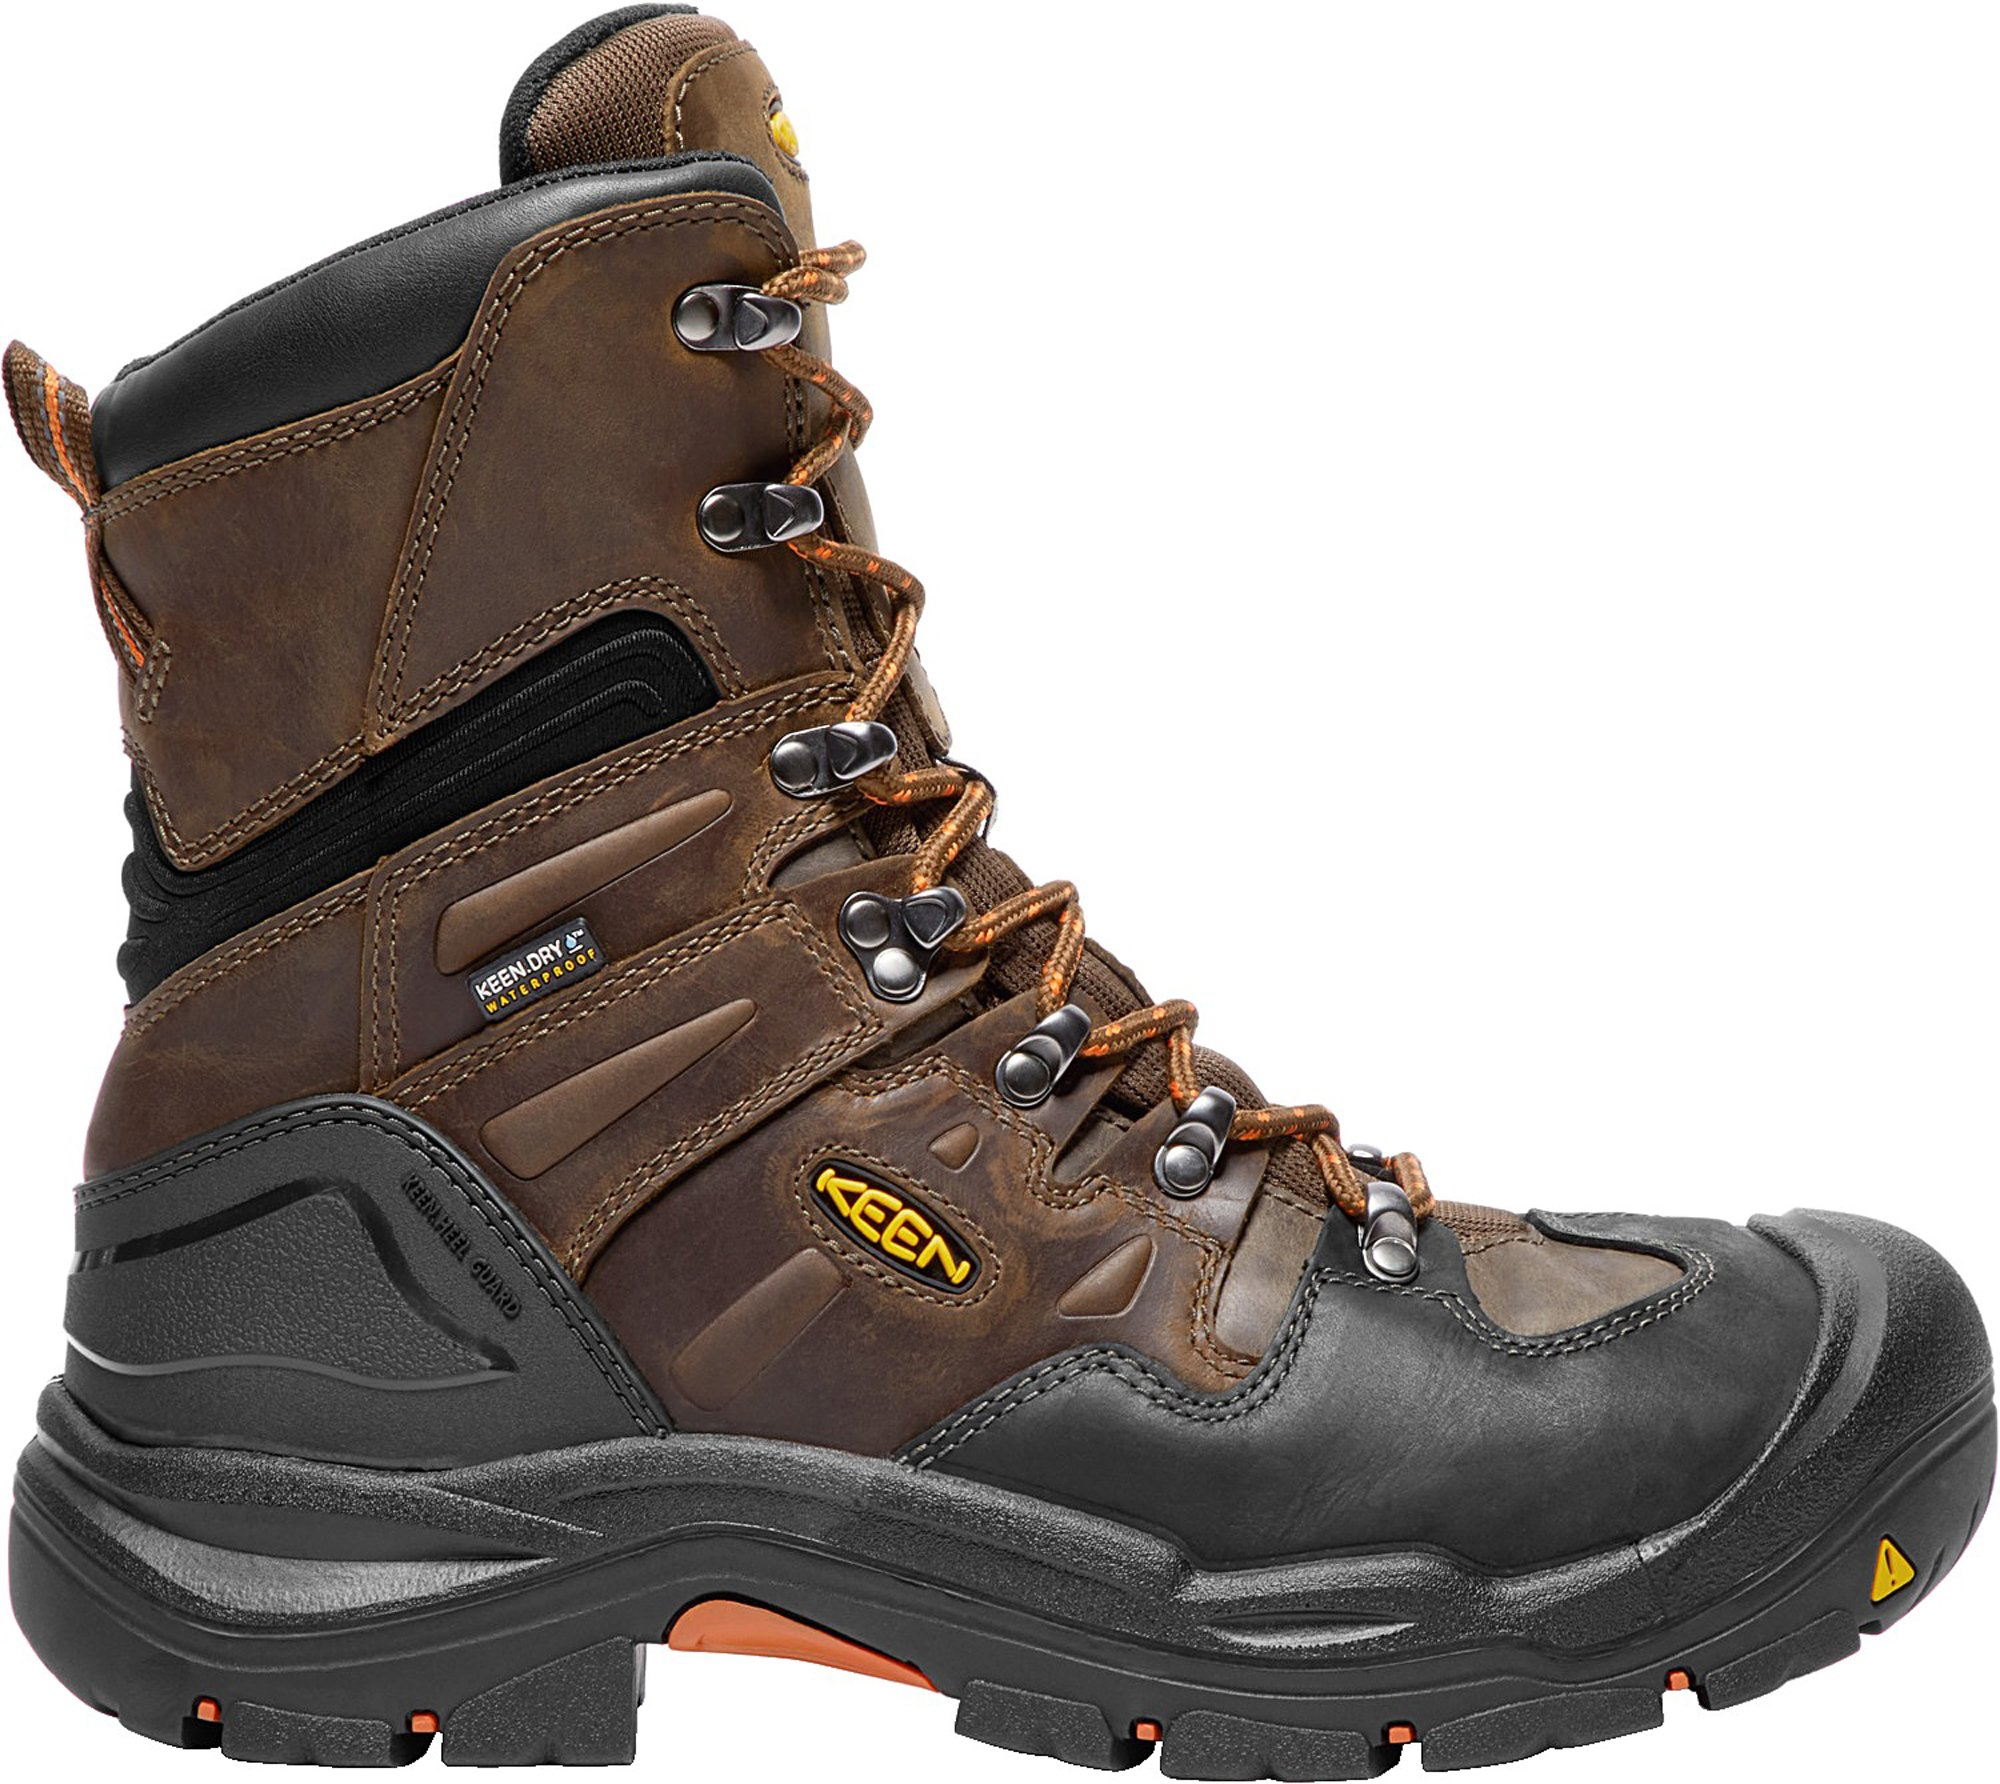 KEEN Utility Coburg 8'' WP (Steel Toe), Men's Waterproof Work Boot, Cascade Brown/Brindle, 7 EE